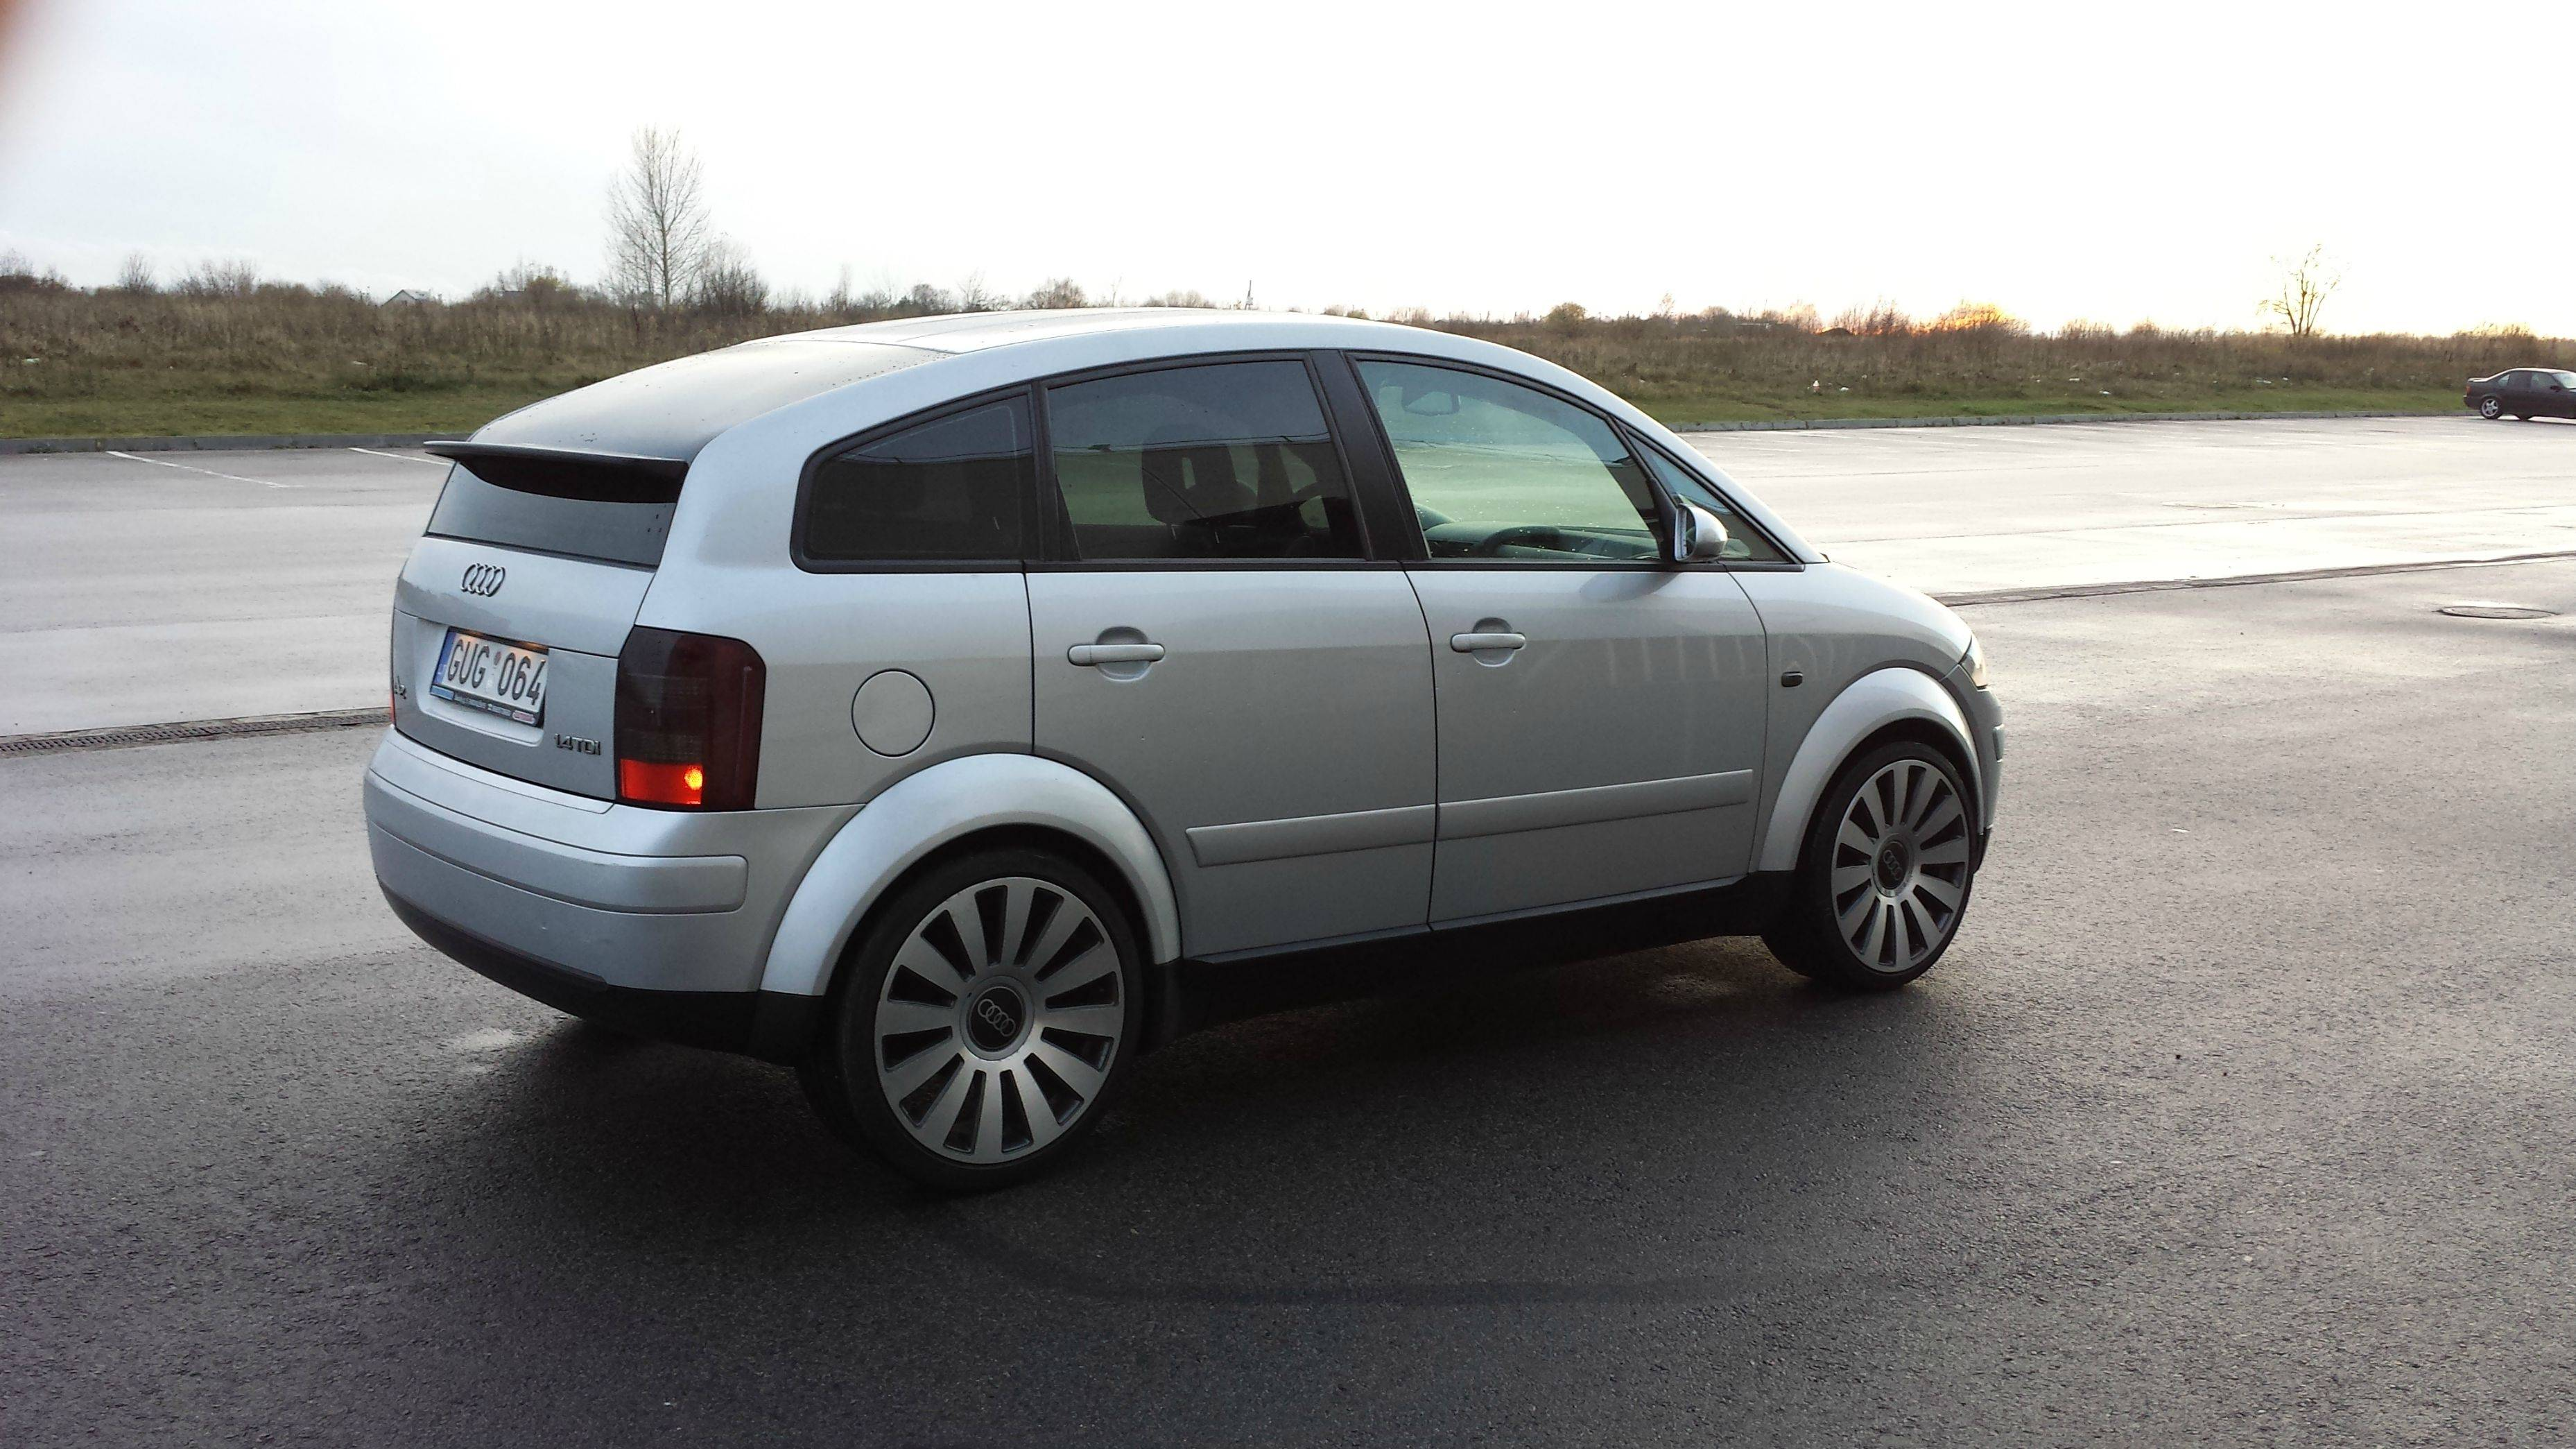 audi a2 pictures #12